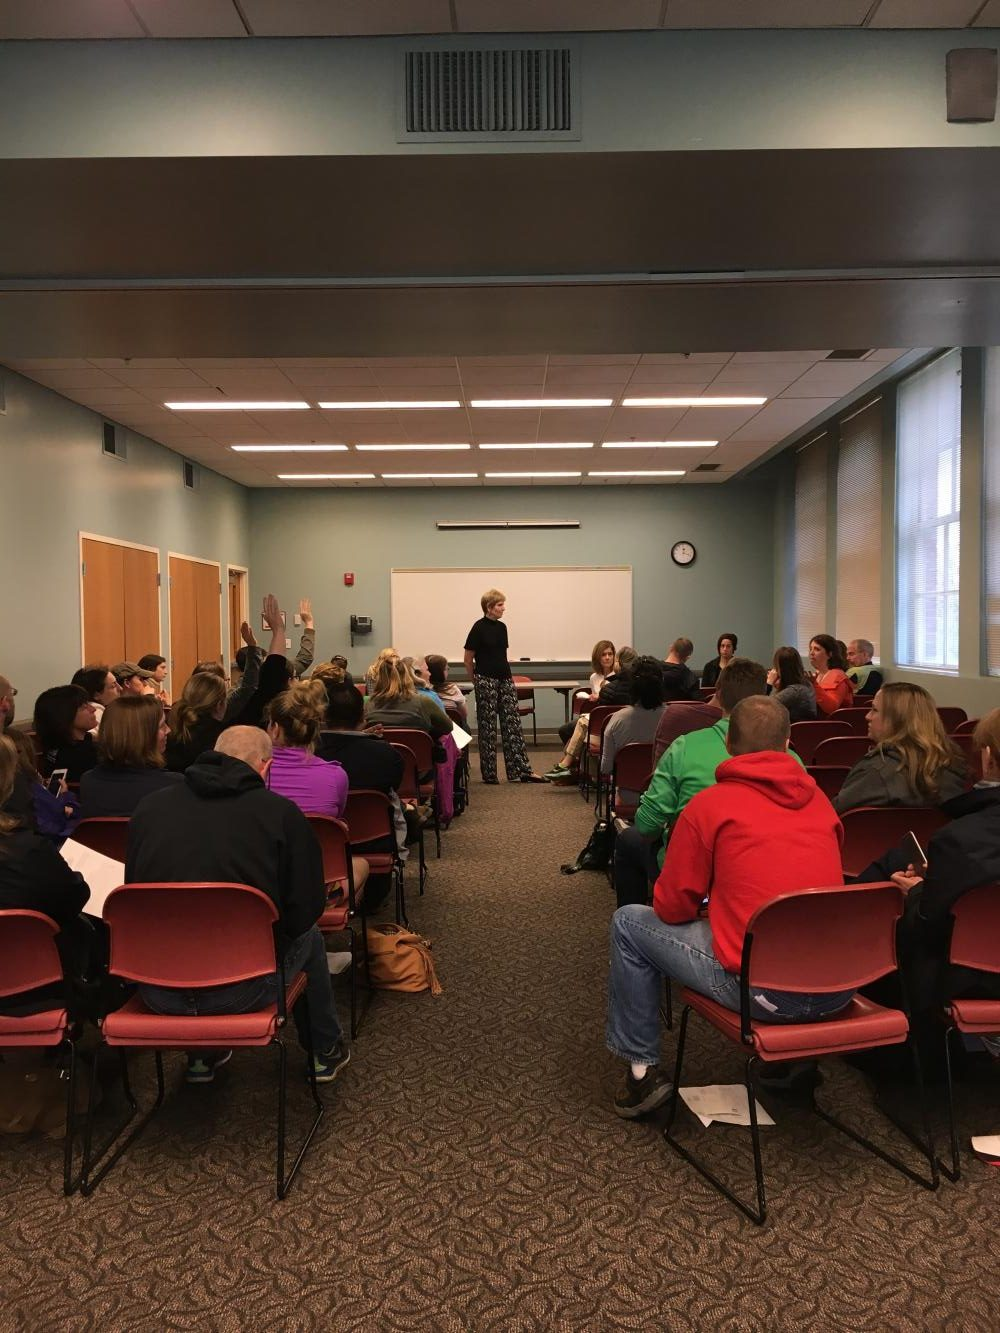 Assitant Superintendent and Director of Curriculum and Instruction Dr. Terri L. Breeden responds to questions from upwards of 50 community members during a discussion at Shaker Heights Public Library Saturday, April 29.